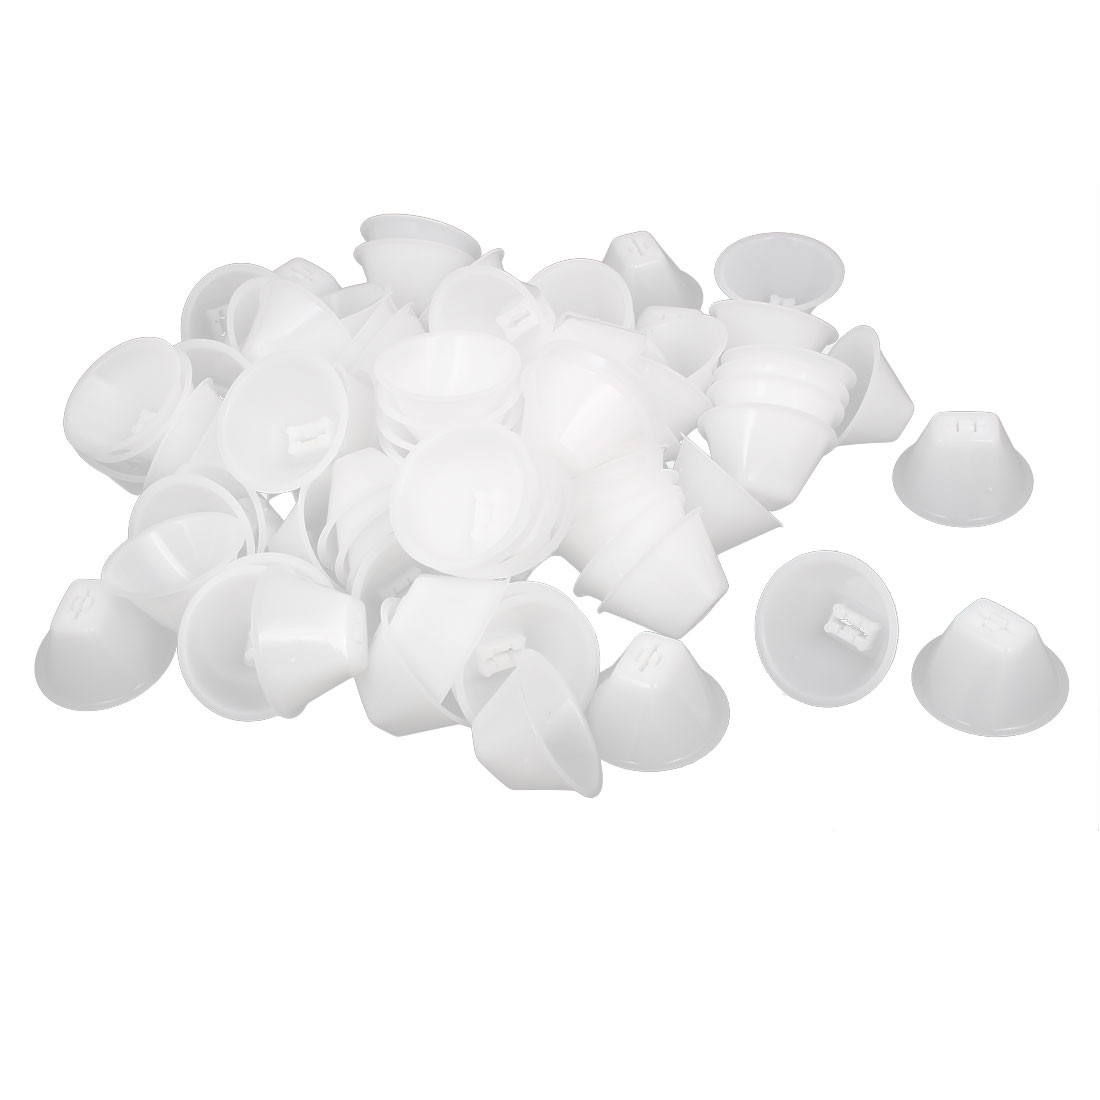 Wall Floor Tile Leveling System Spacers Caps White 48mmx25mm 100pcs